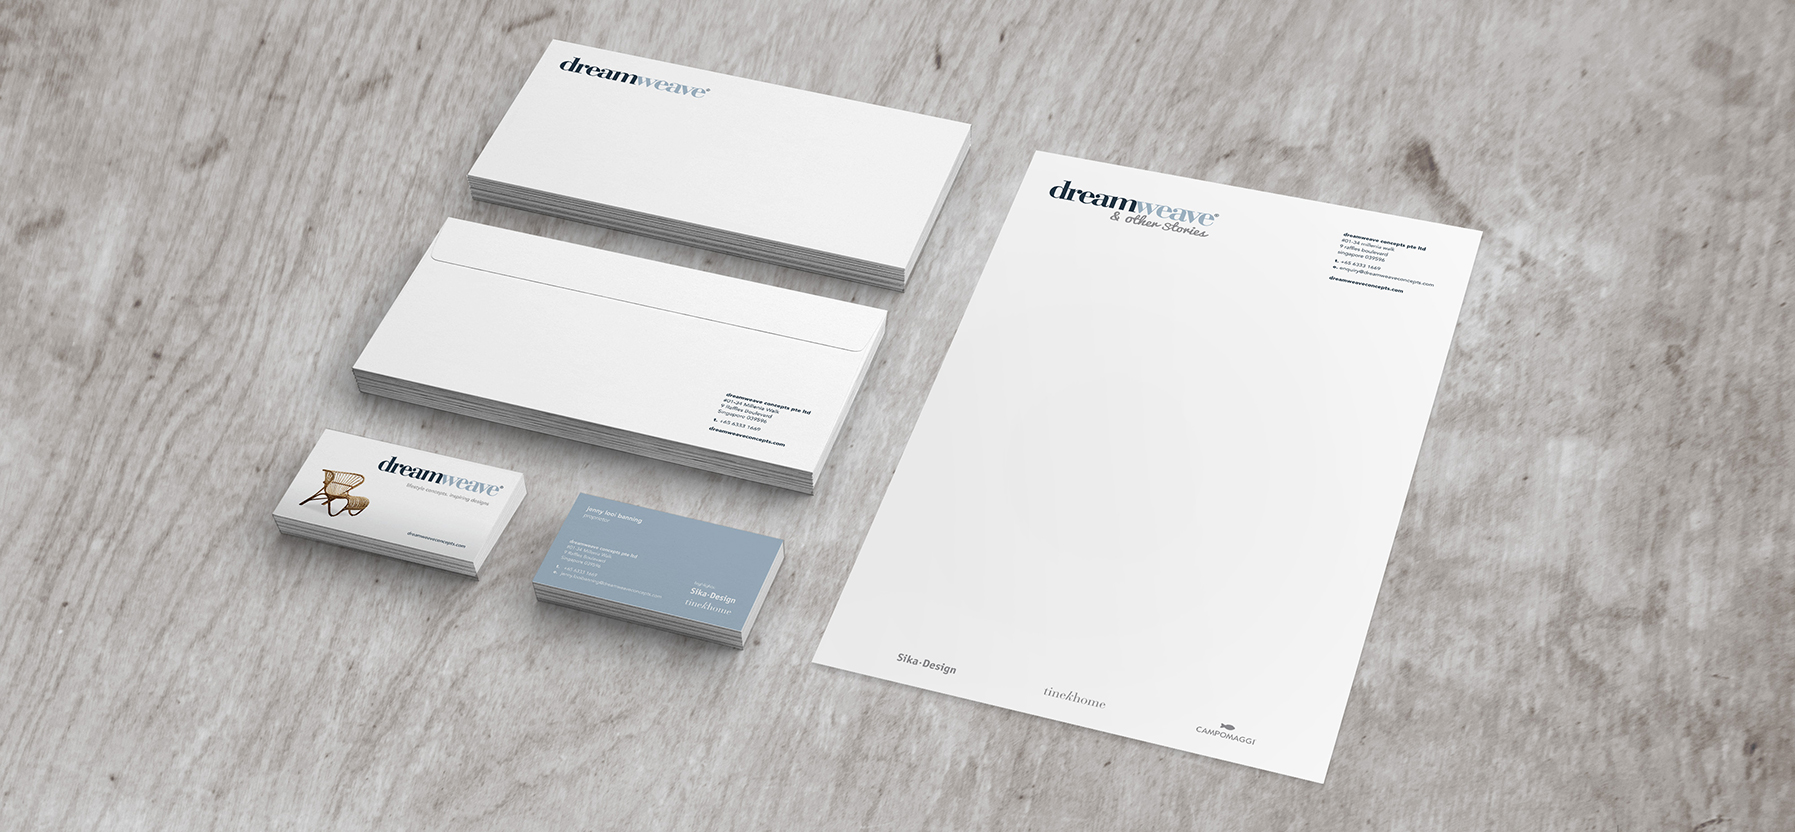 brand identity stationery design for outdoor indoor furniture company